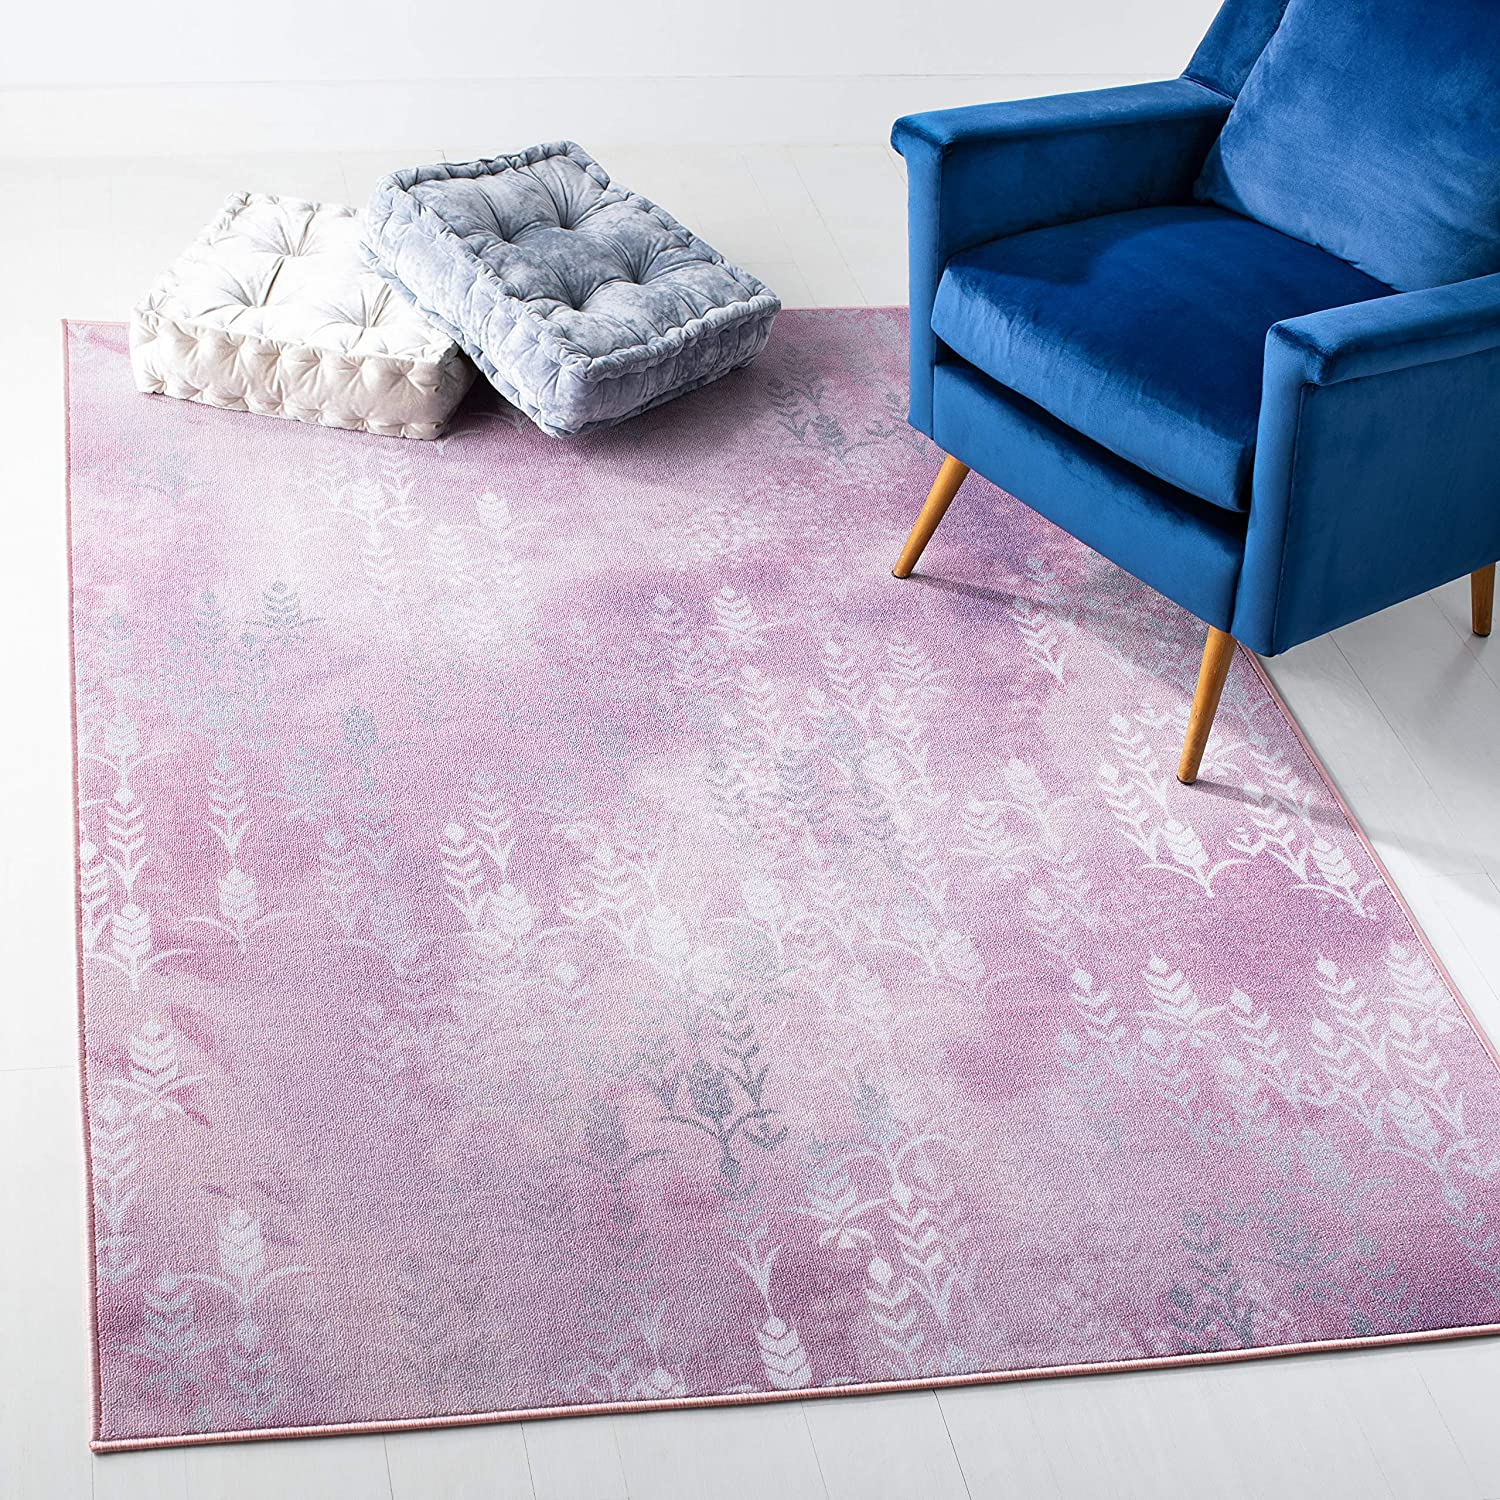 Safavieh Online limited product Collection Inspired Online limited product by Disney's Spirit Frozen - Rug II